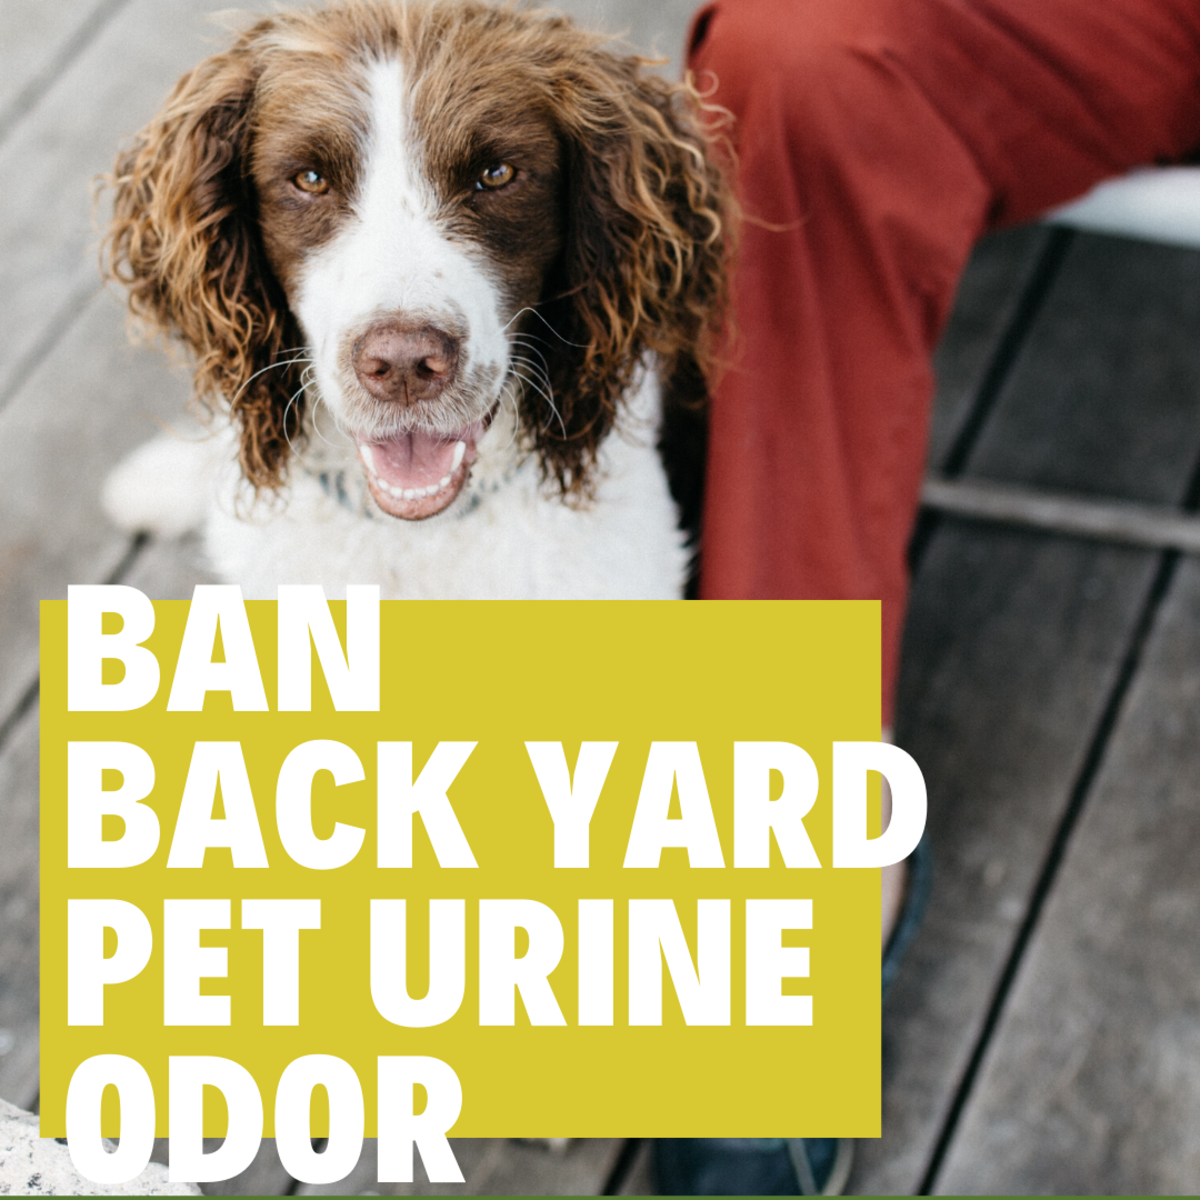 Get Rid of Pet Urine Odor